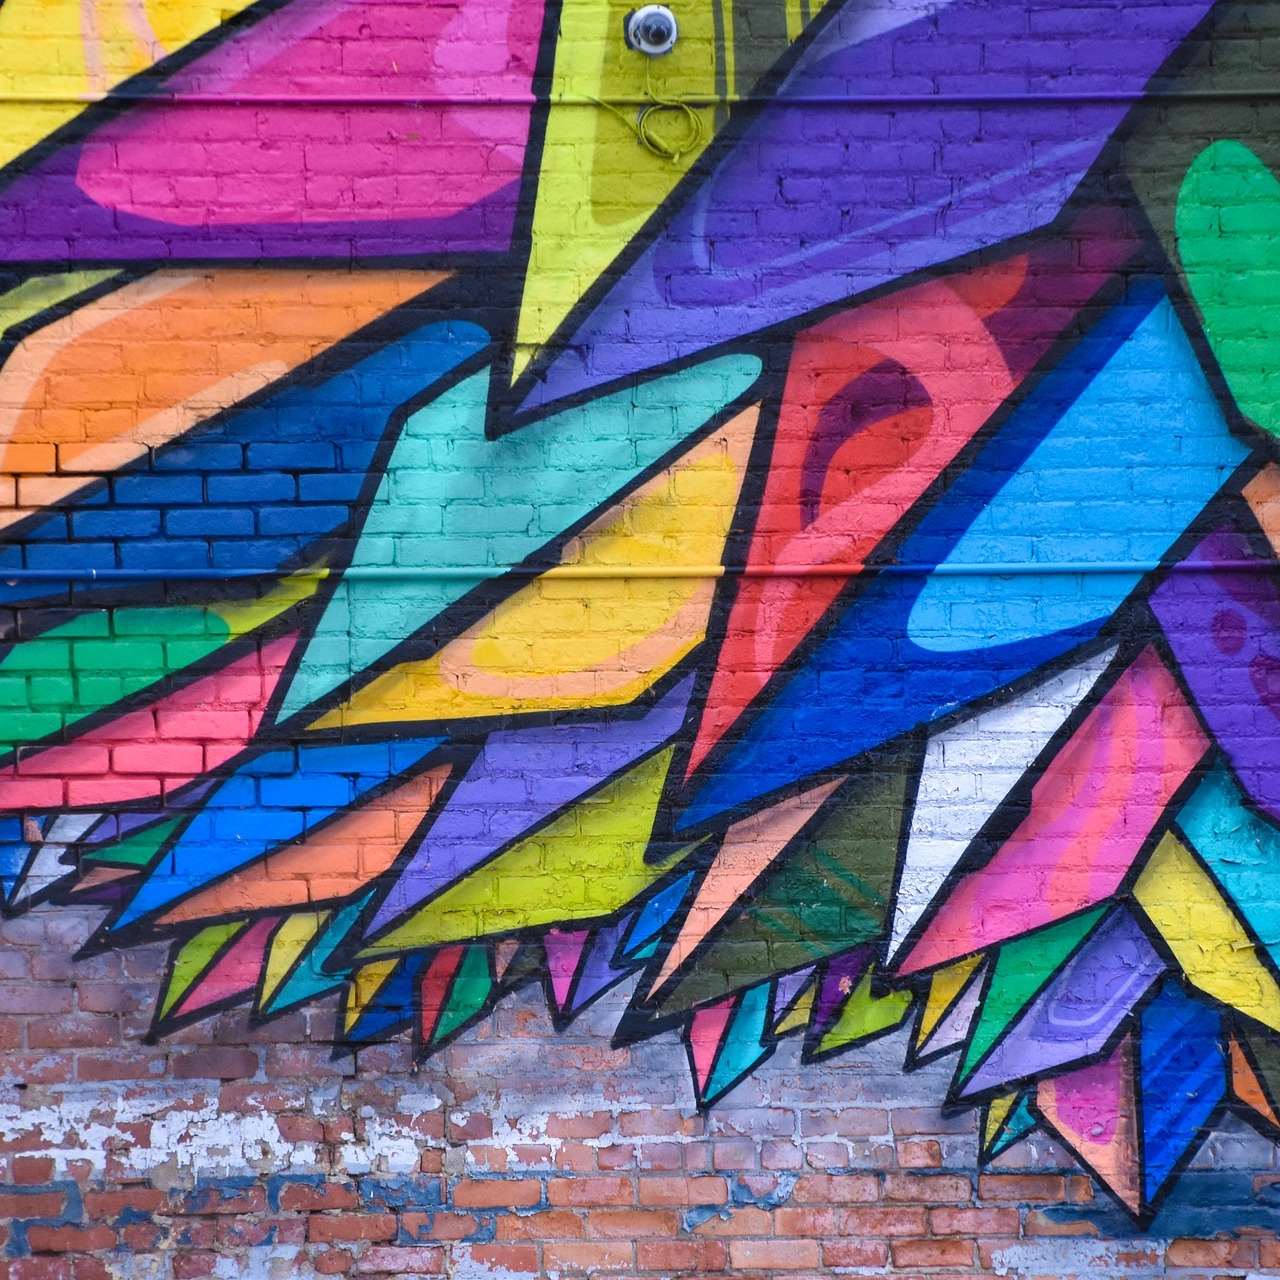 IMAGE CREDIT:  Wall Mural,  by SnapStock, Licenced under CC0. [ https://pixabay.com/en/wall-art-mural-colorful-painting-2583885/ ]